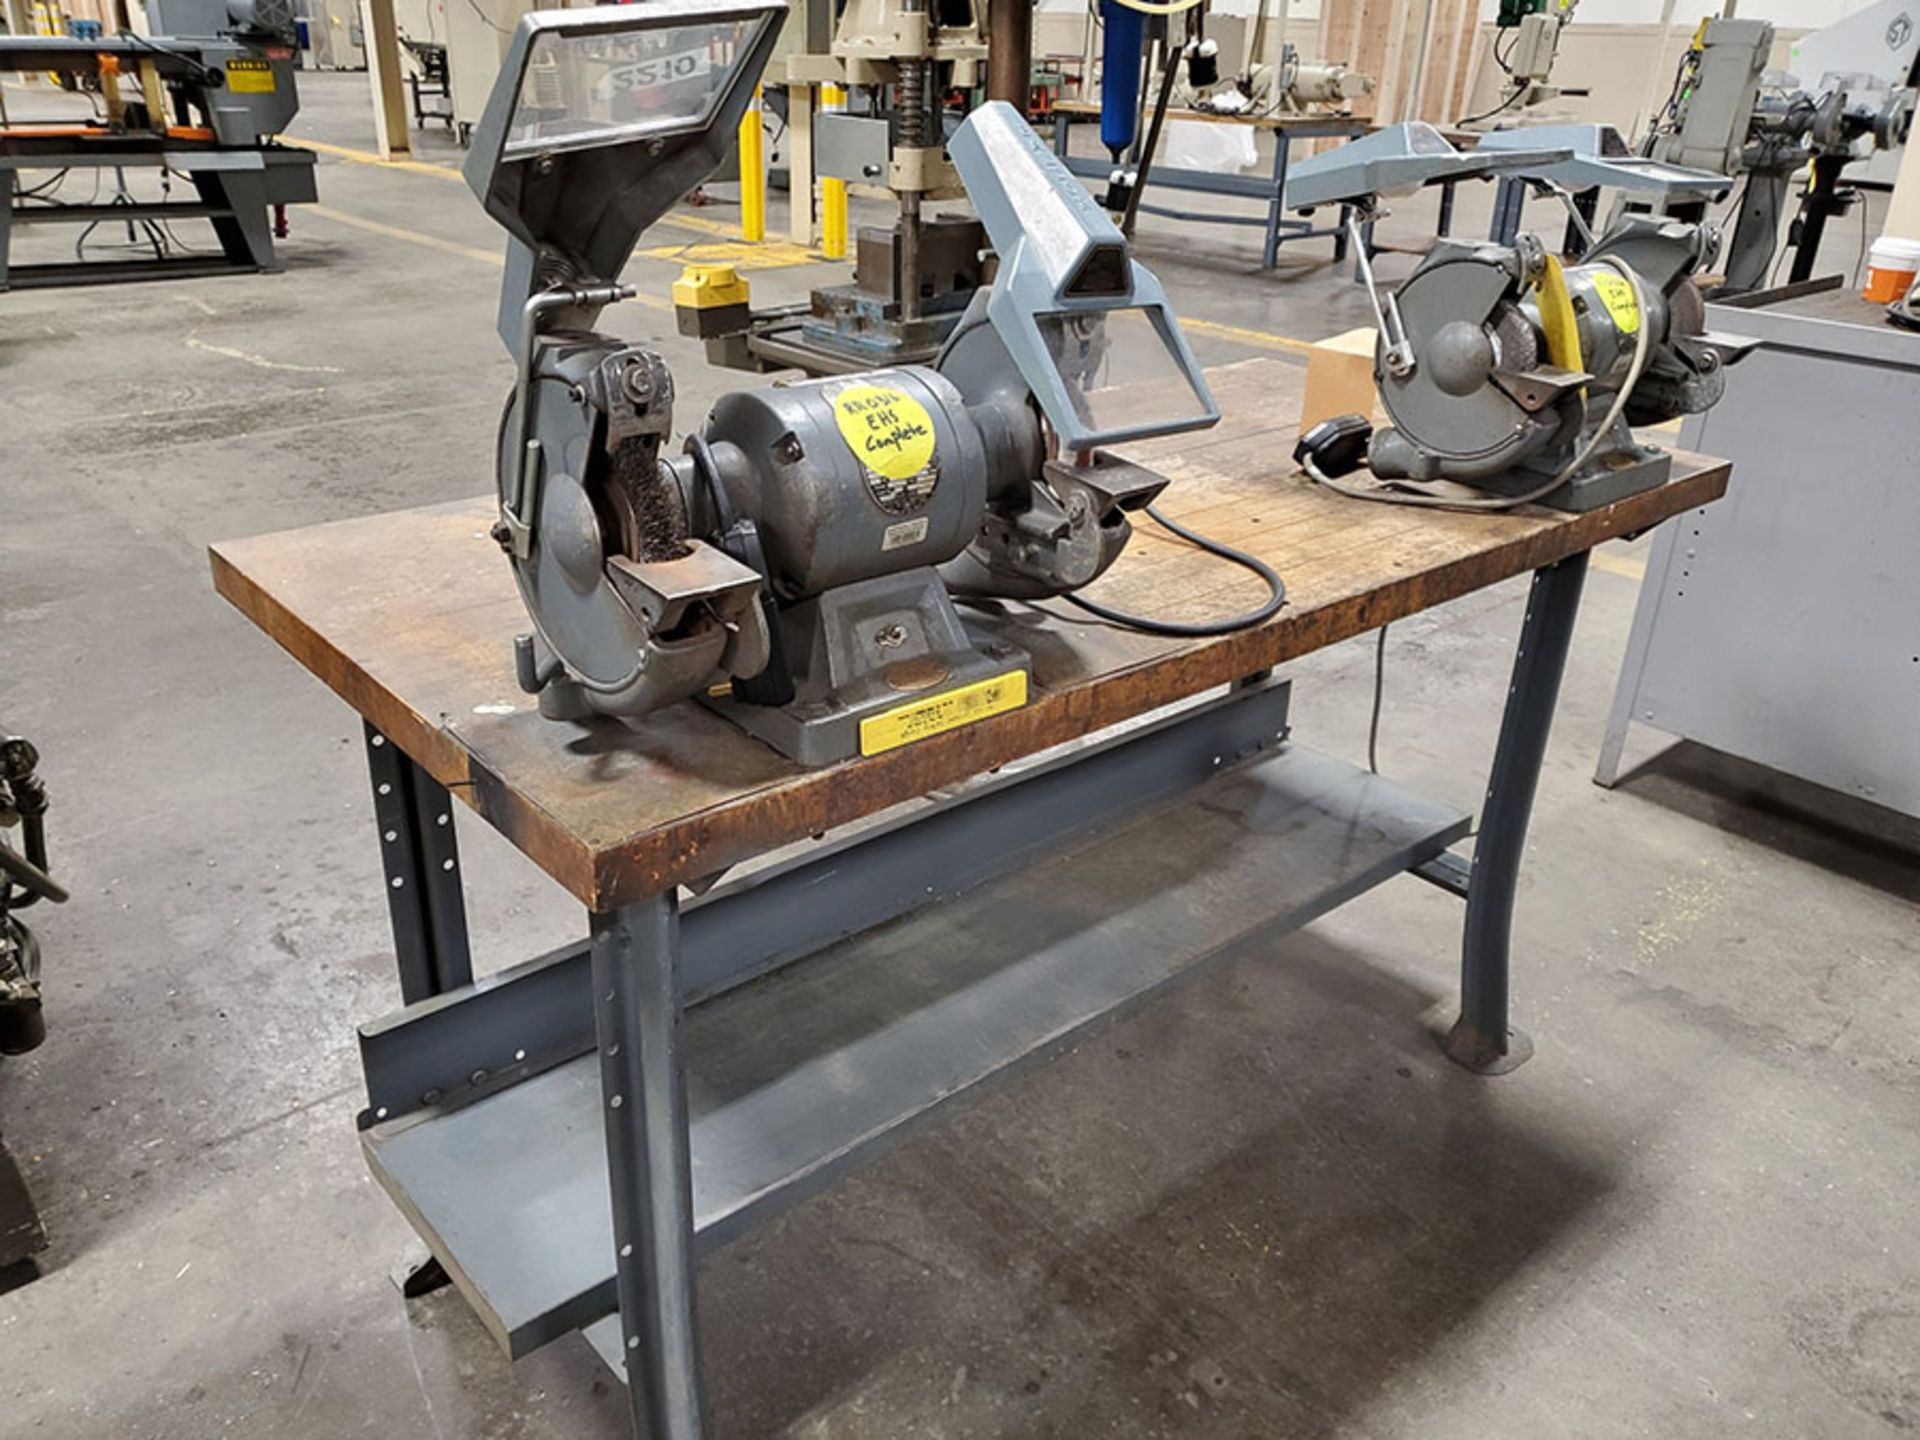 Lot 139 - LOT OF (2) ROCKWELL DOUBLE END GRINDERS MOUNTED ON BUTCHER BLOCK TABLE